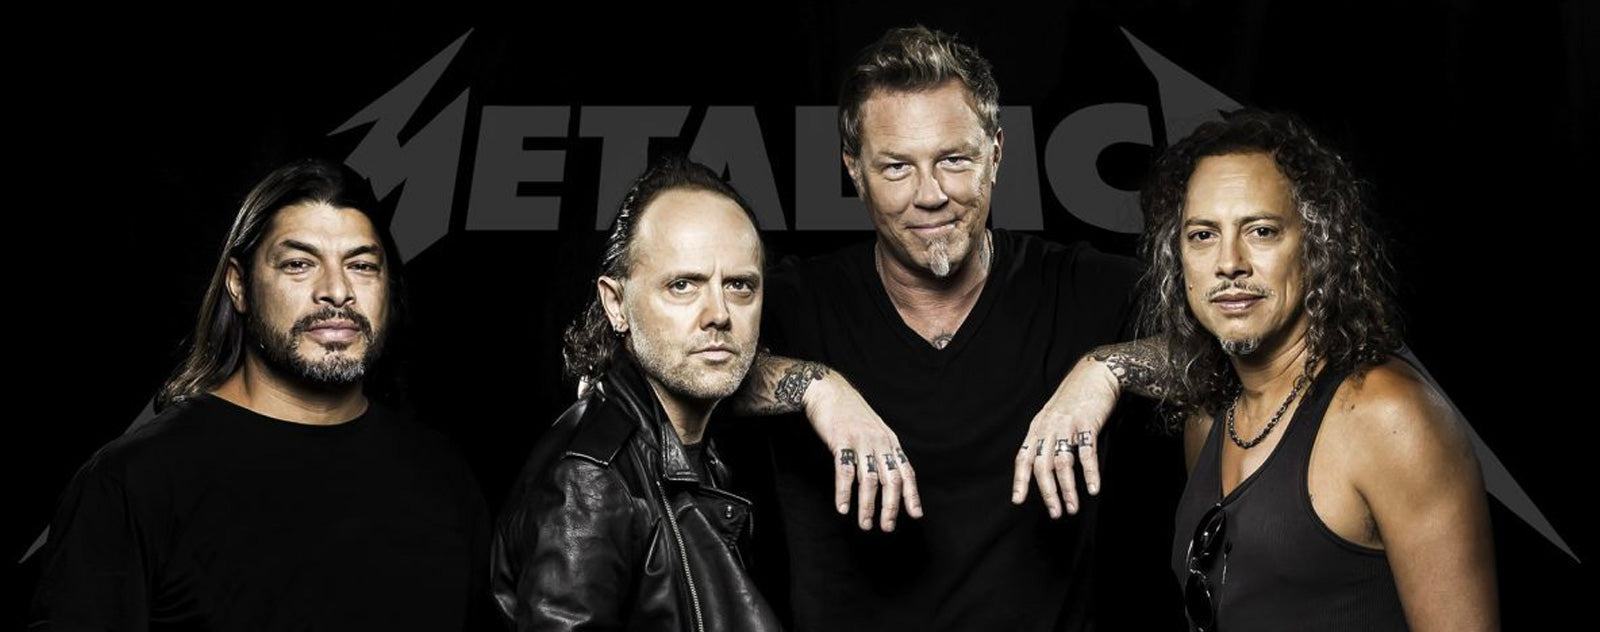 Photo du groupe Metallica